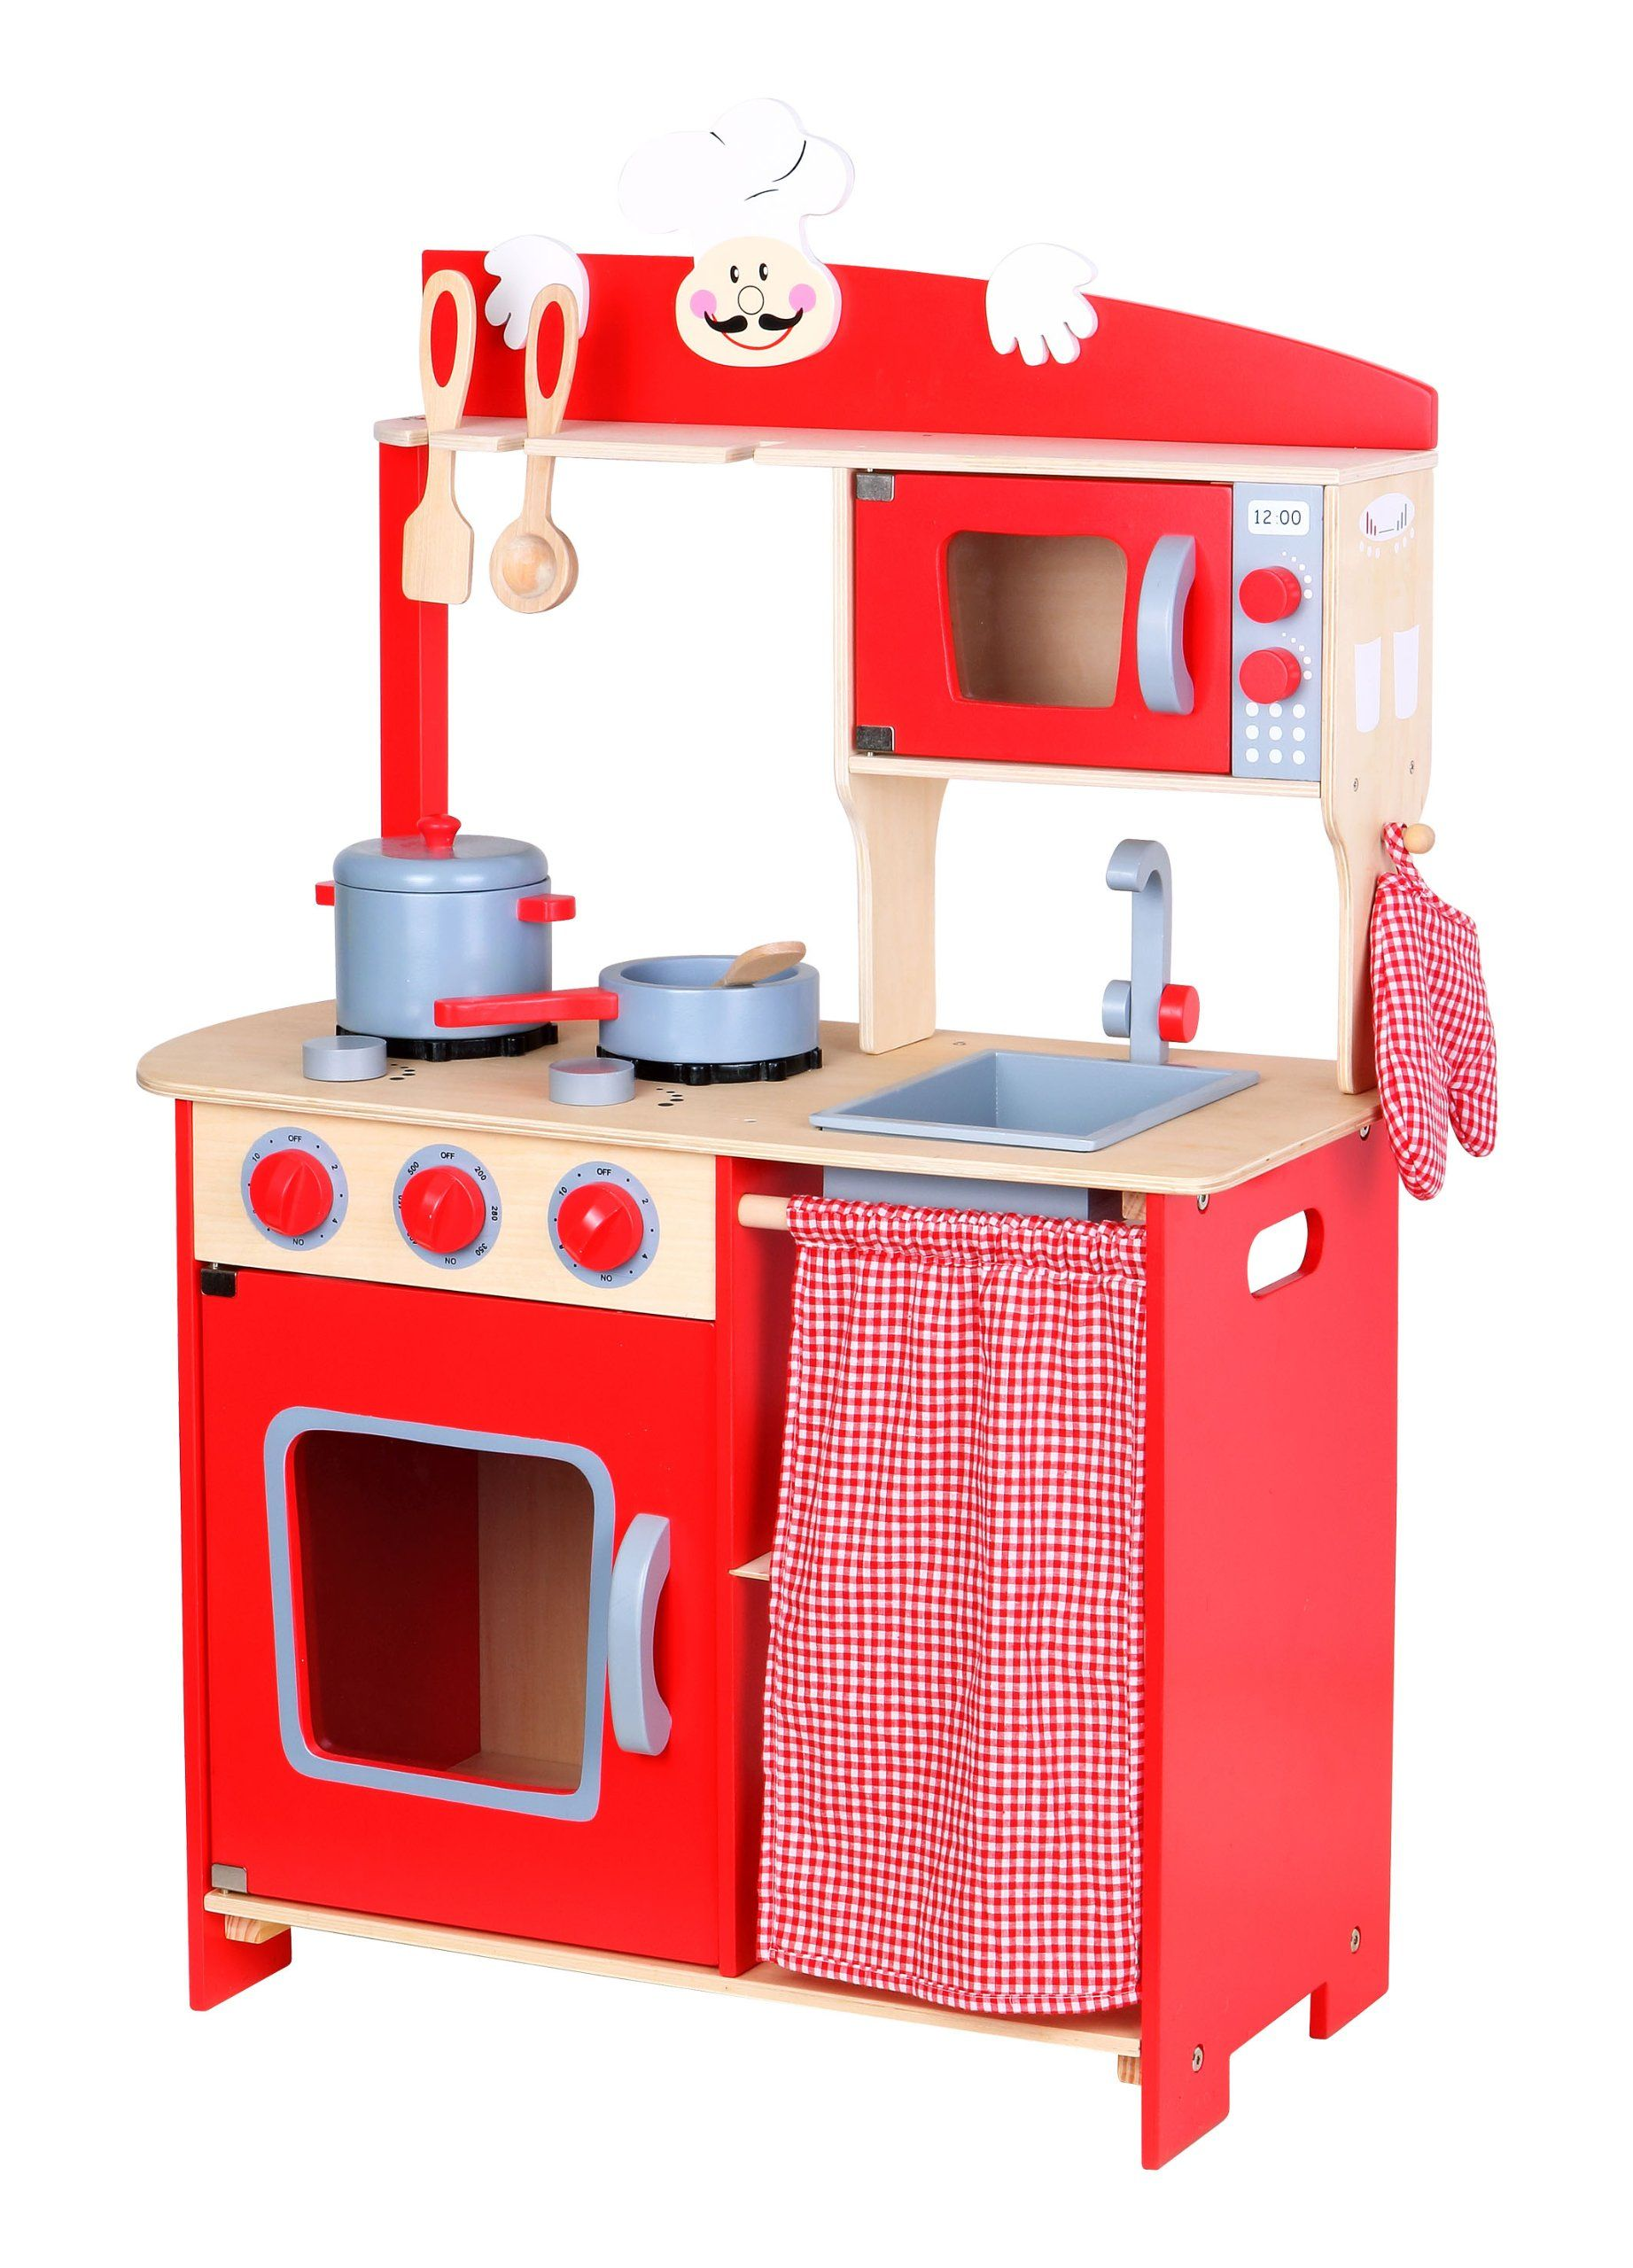 Leomark Mini Wooden Kitchen Chef 59 99 Unisex Wooden Toy  ~ Cocinita Madera El Corte Ingles